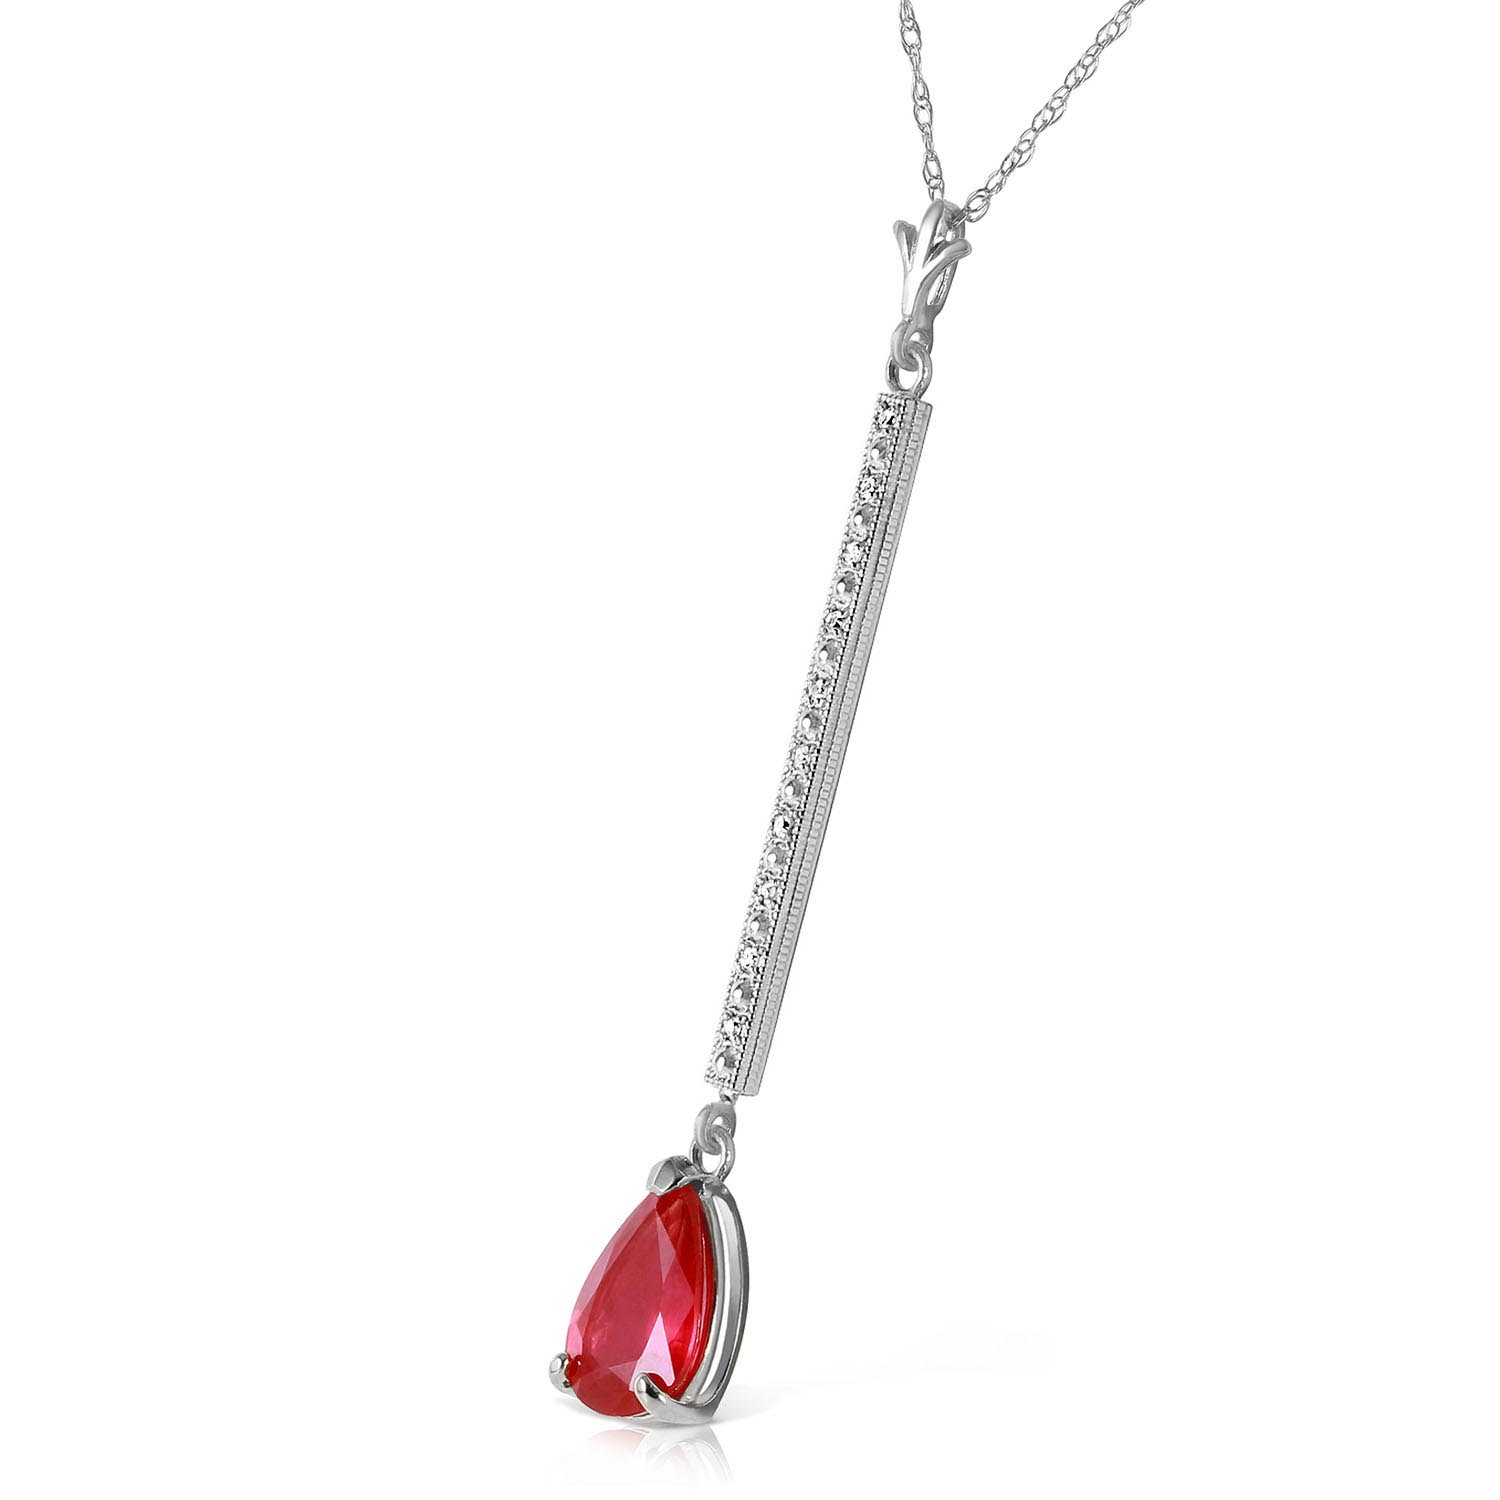 Diamond and Ruby Bar Pendant Necklace in 9ct White Gold